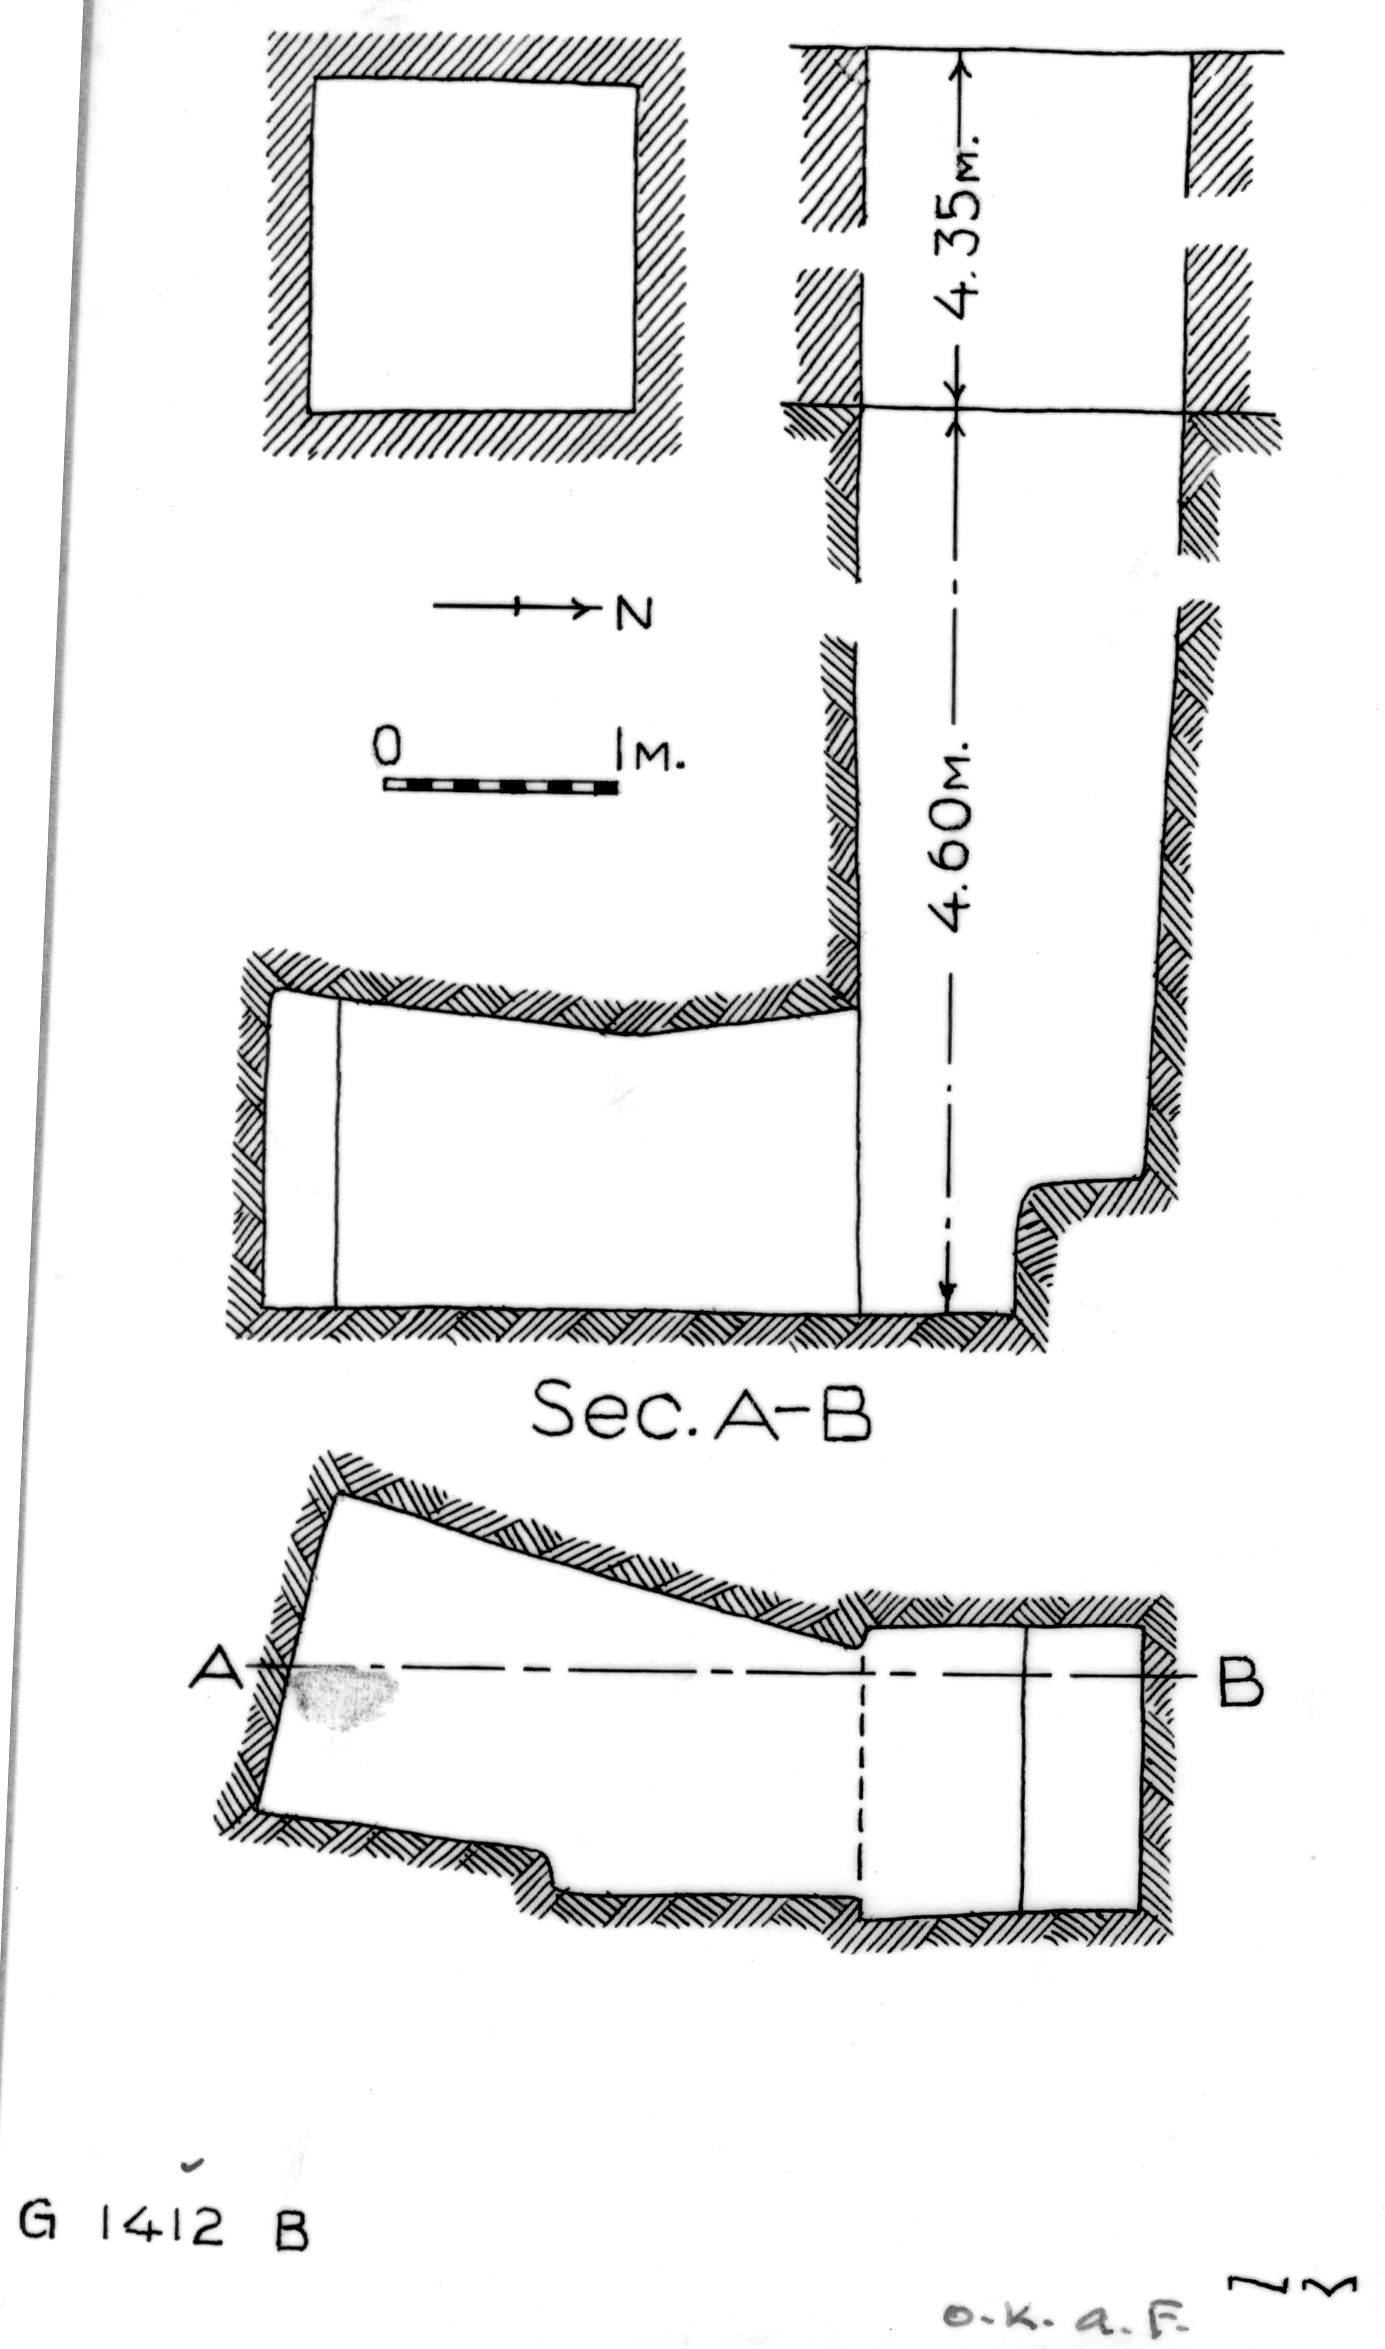 Maps and plans: G 1412, Shaft B